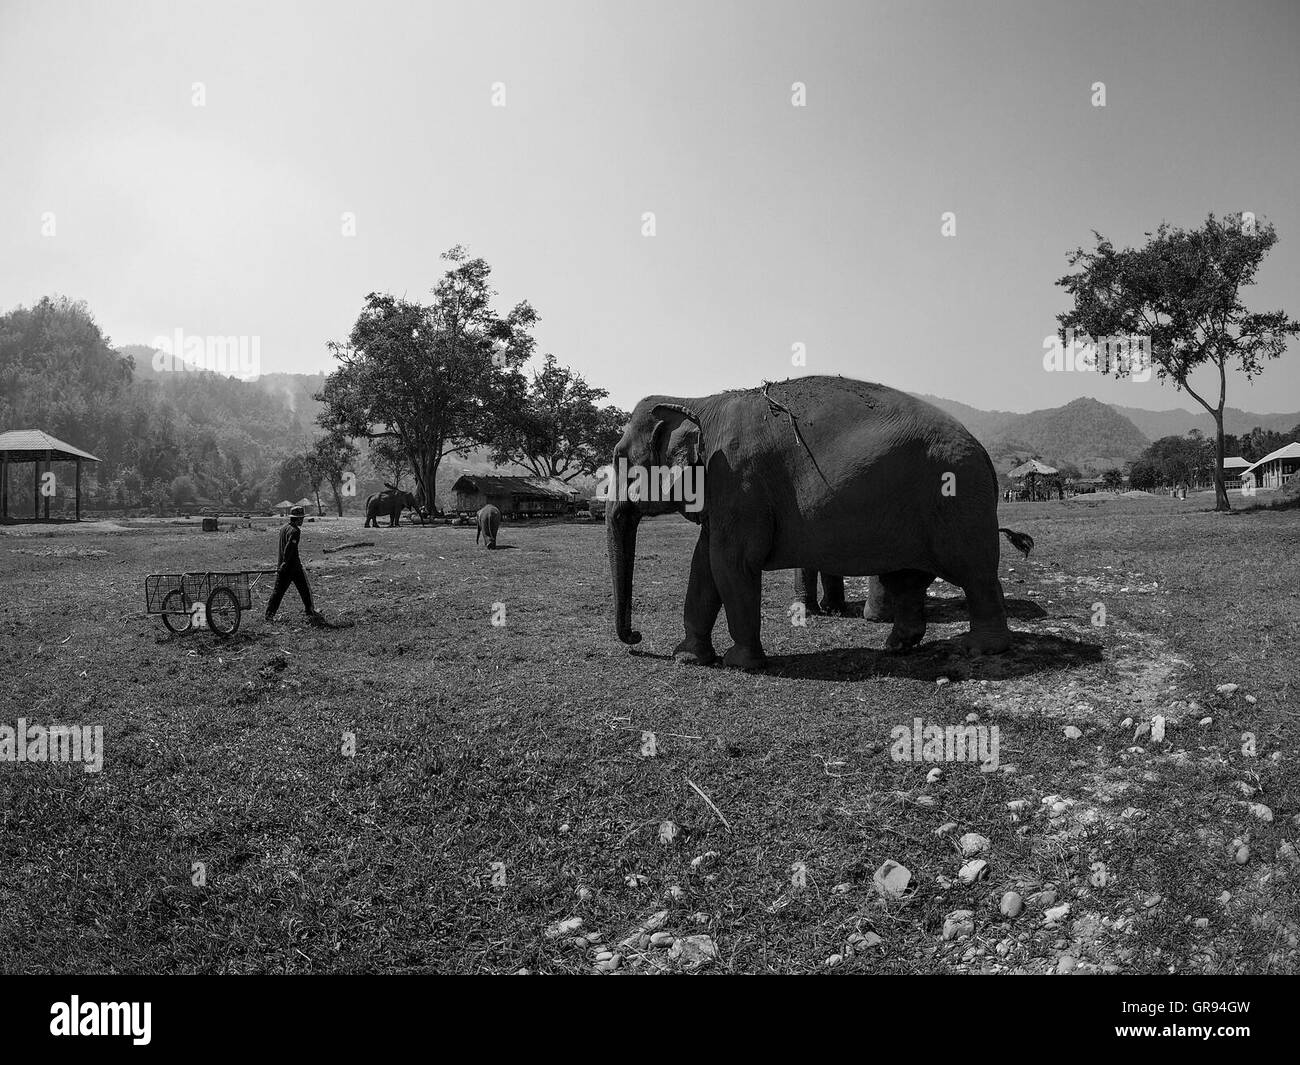 Elephants On Field Against Sky - Stock Image